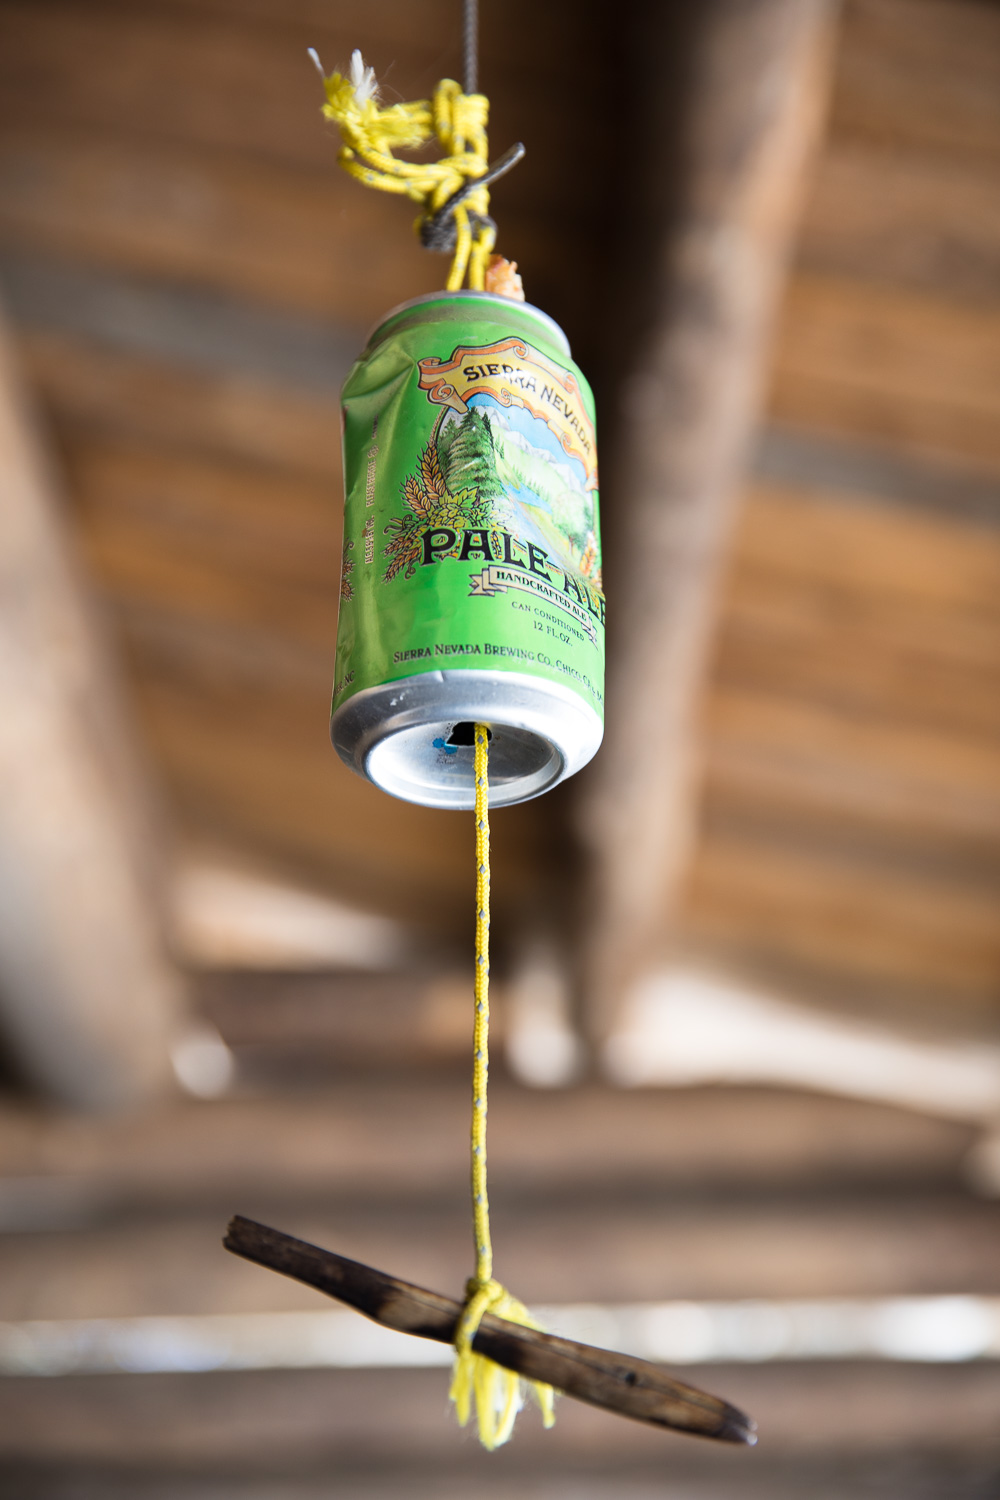 A place to hang your pack. The beer can prevents mice from getting to your pack.